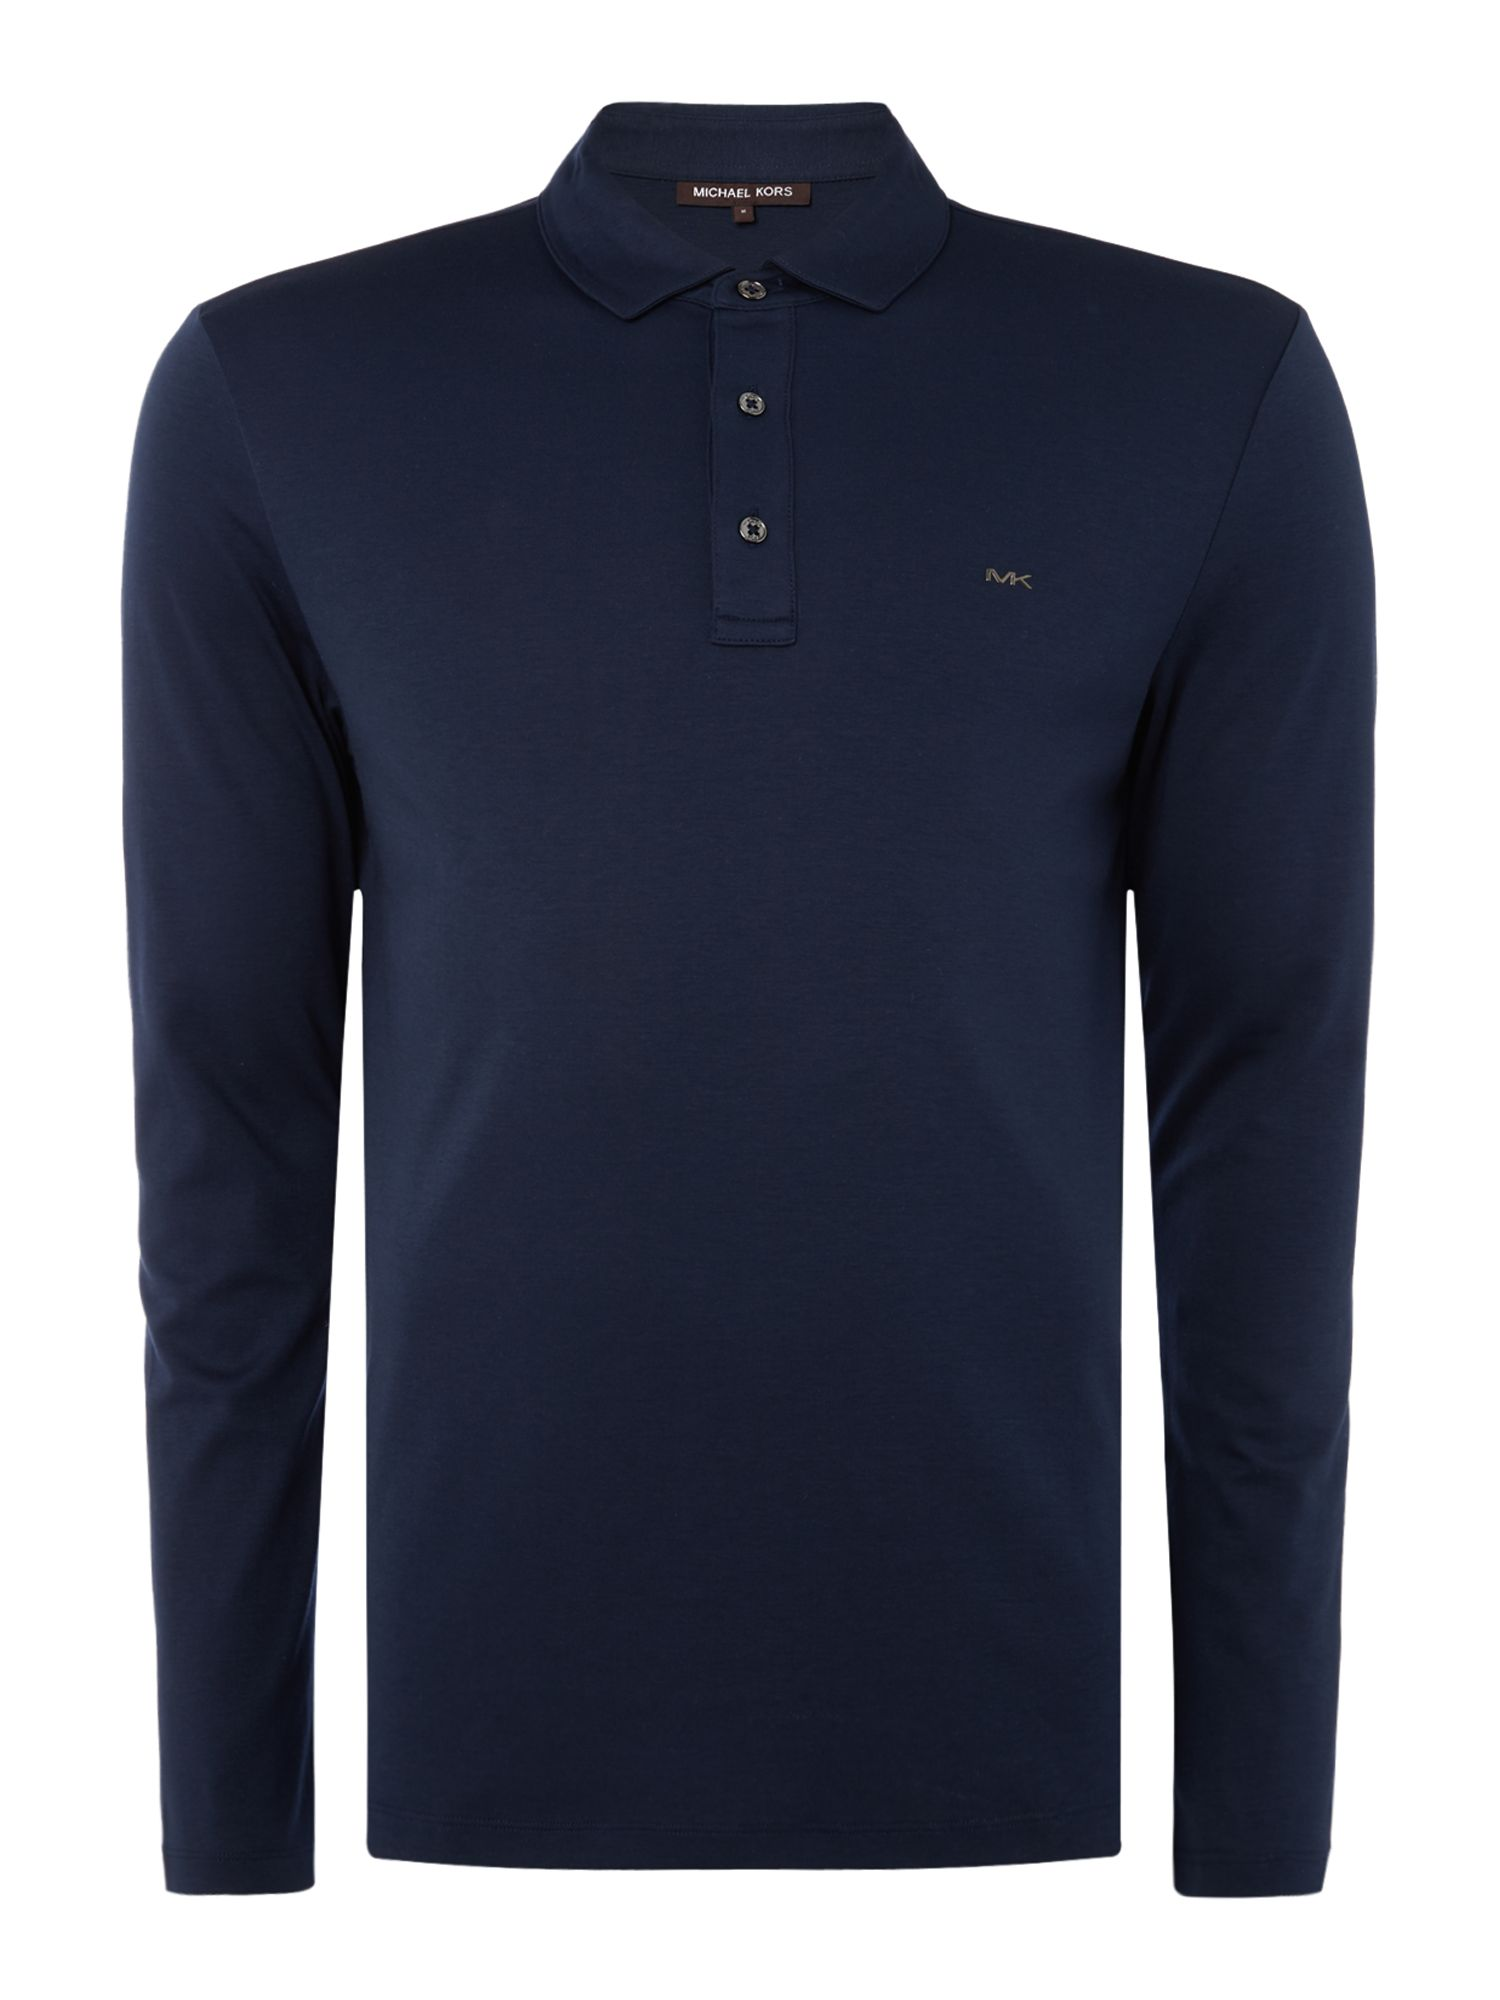 Men's Michael Kors Long Sleeve Slim Fit Polo Shirt, Blue